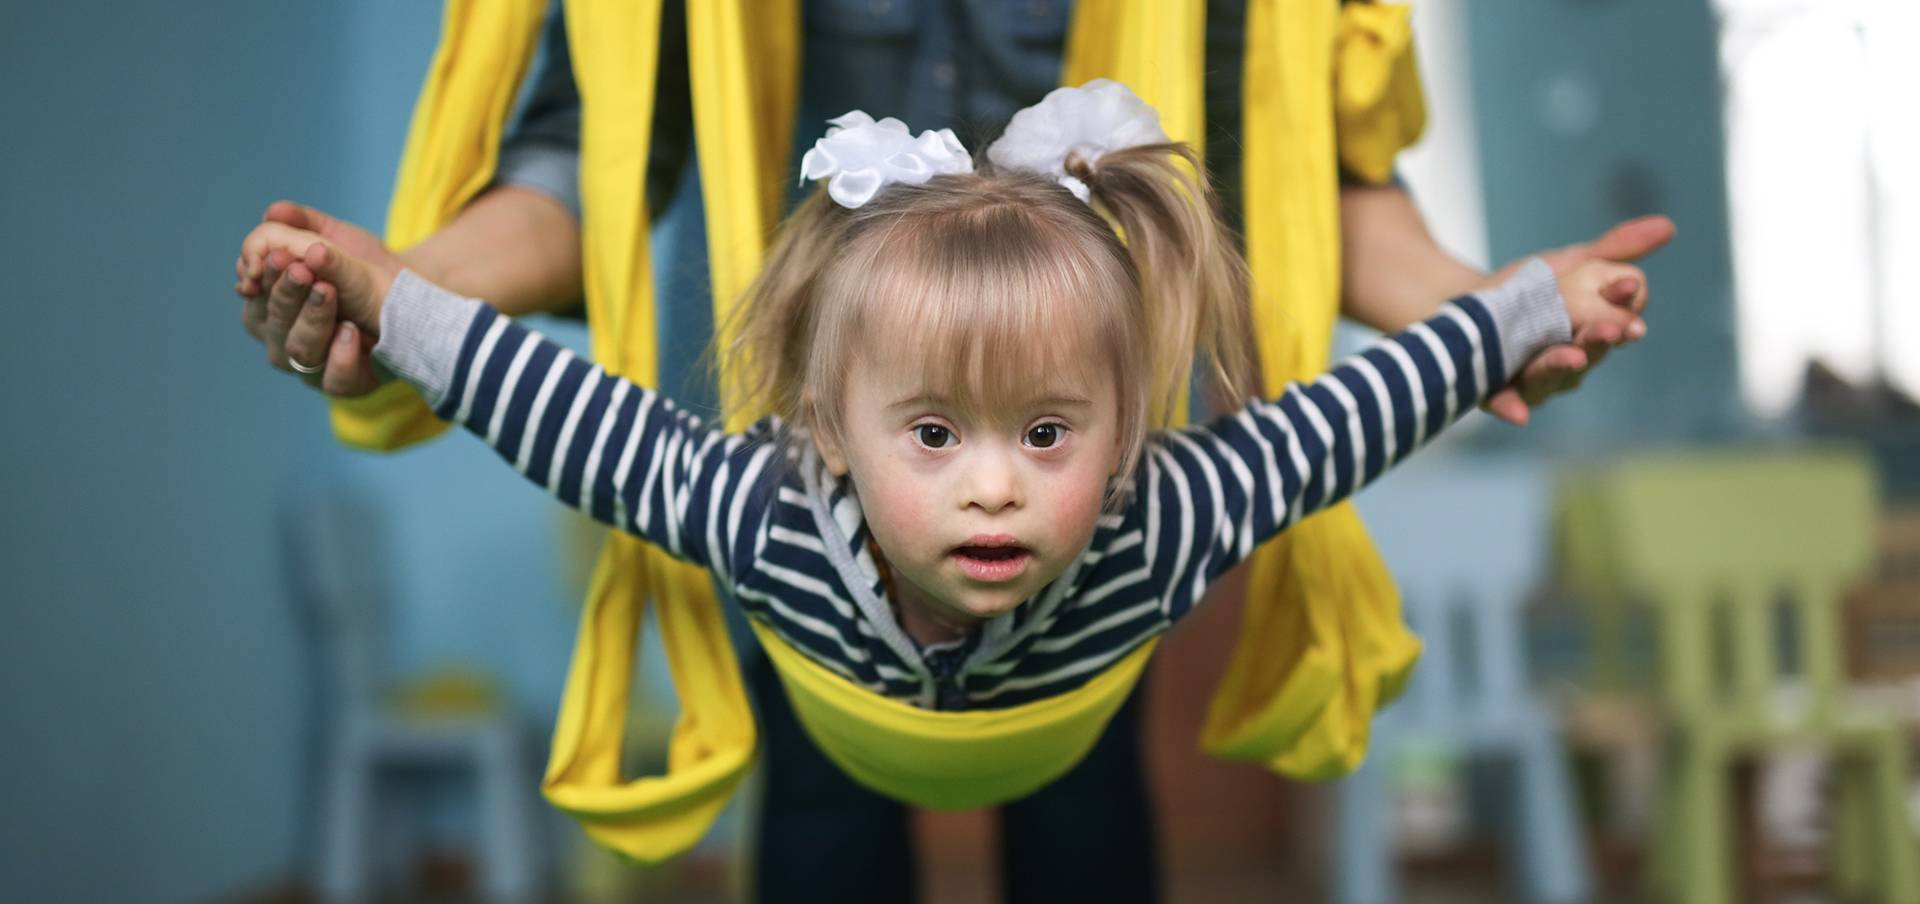 woman with child engaged in air yoga, yellow hammock,